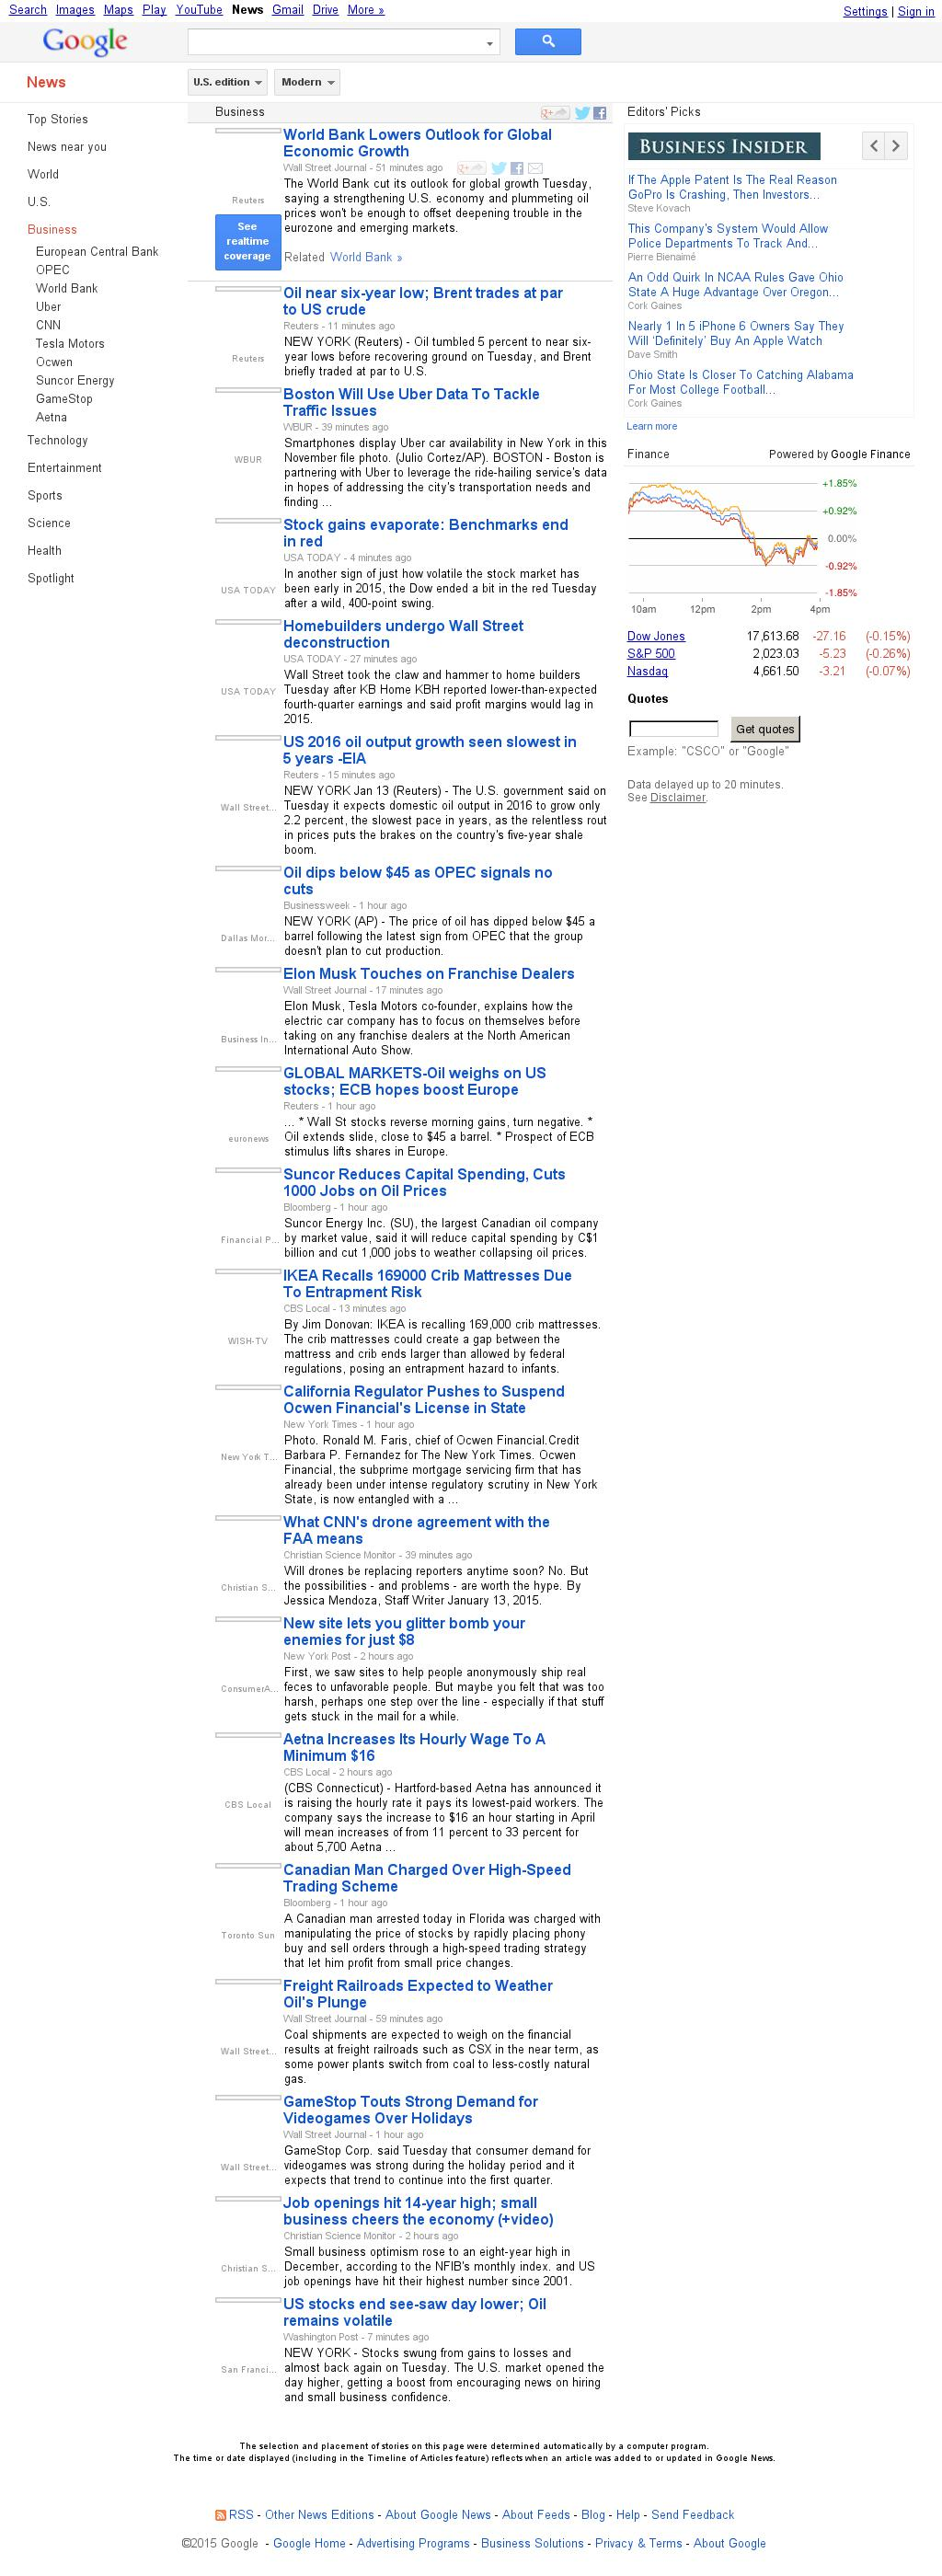 Google News: Business at Tuesday Jan. 13, 2015, 11:08 p.m. UTC